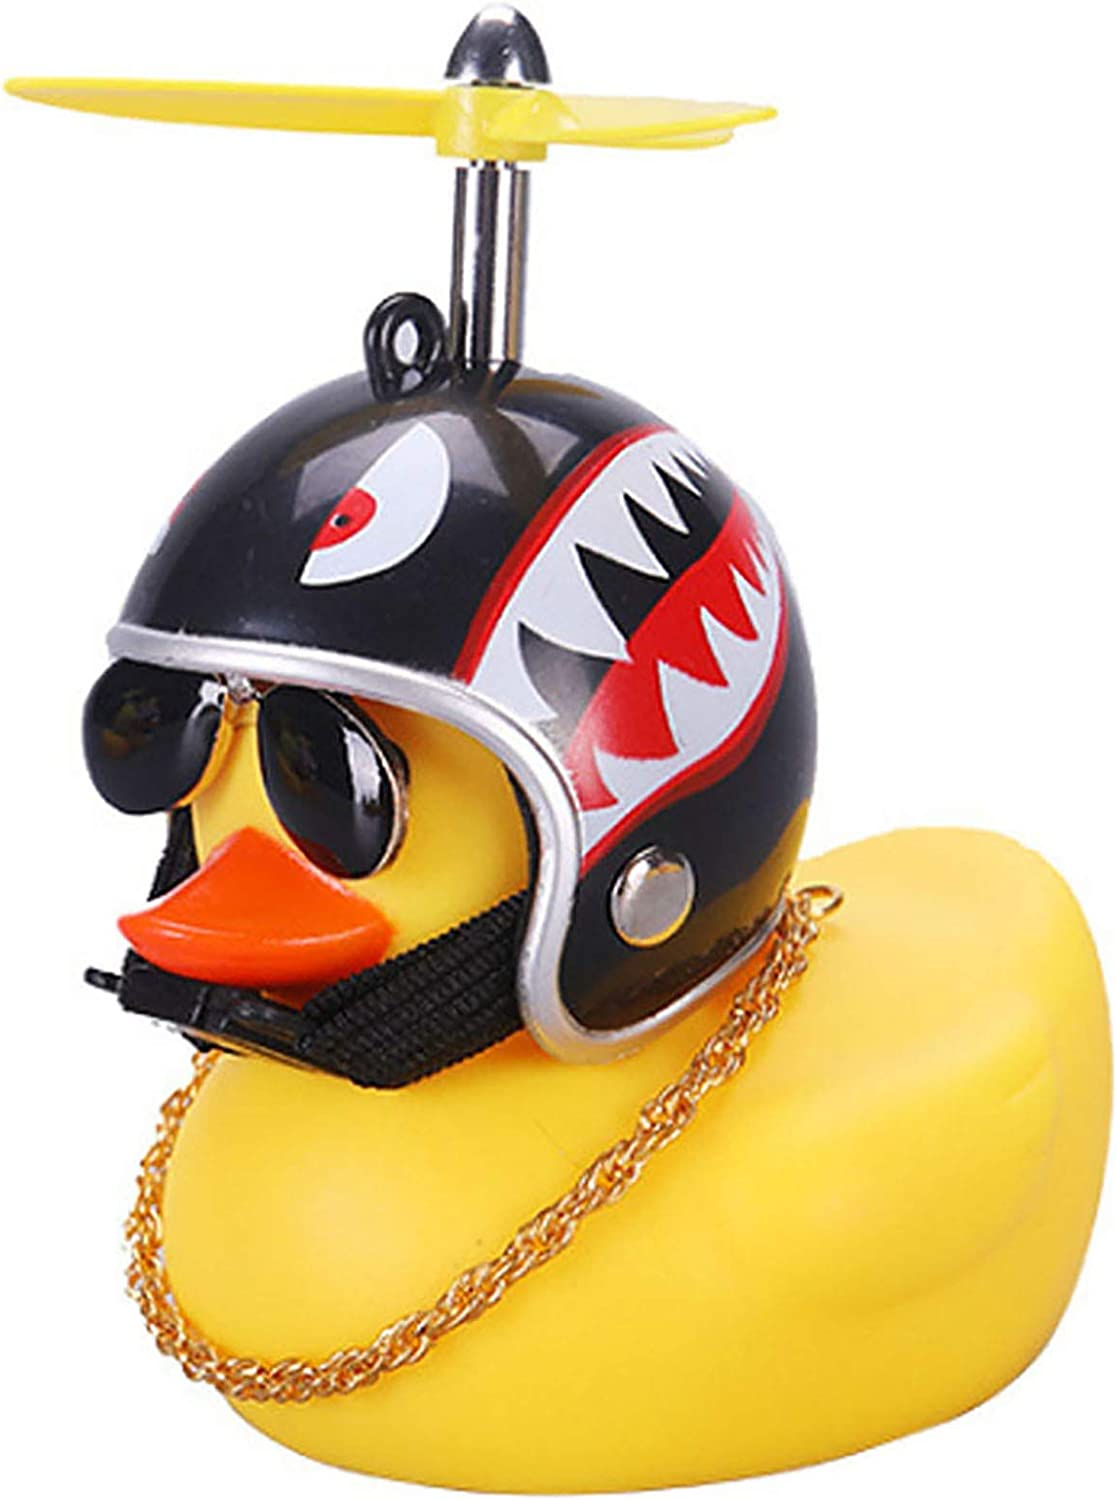 wonuu Rubber Duck Car Ornaments Pink Duck Bike Bell Cute Duck Car Dashboard Decorations Squeeze Duck Bicycle Horns with Propeller Helmet Glasses and Gold Chain